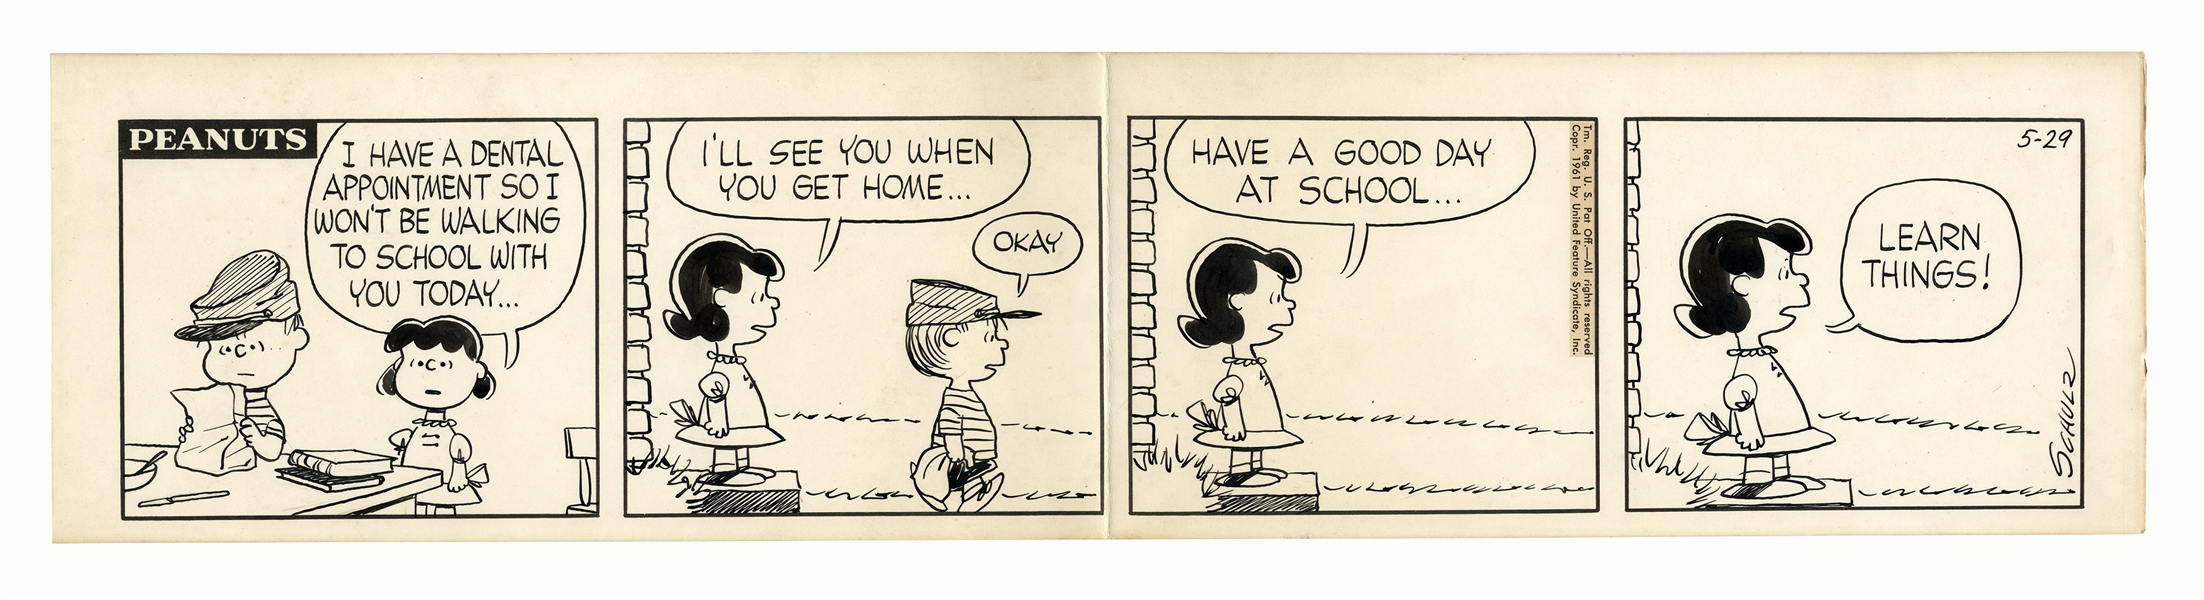 Charles Schulz Hand-Drawn Comic Strip From October 1961 -- Lucy Tells Her Brother Linus to ''LEARN THINGS!'' as He Leaves for School